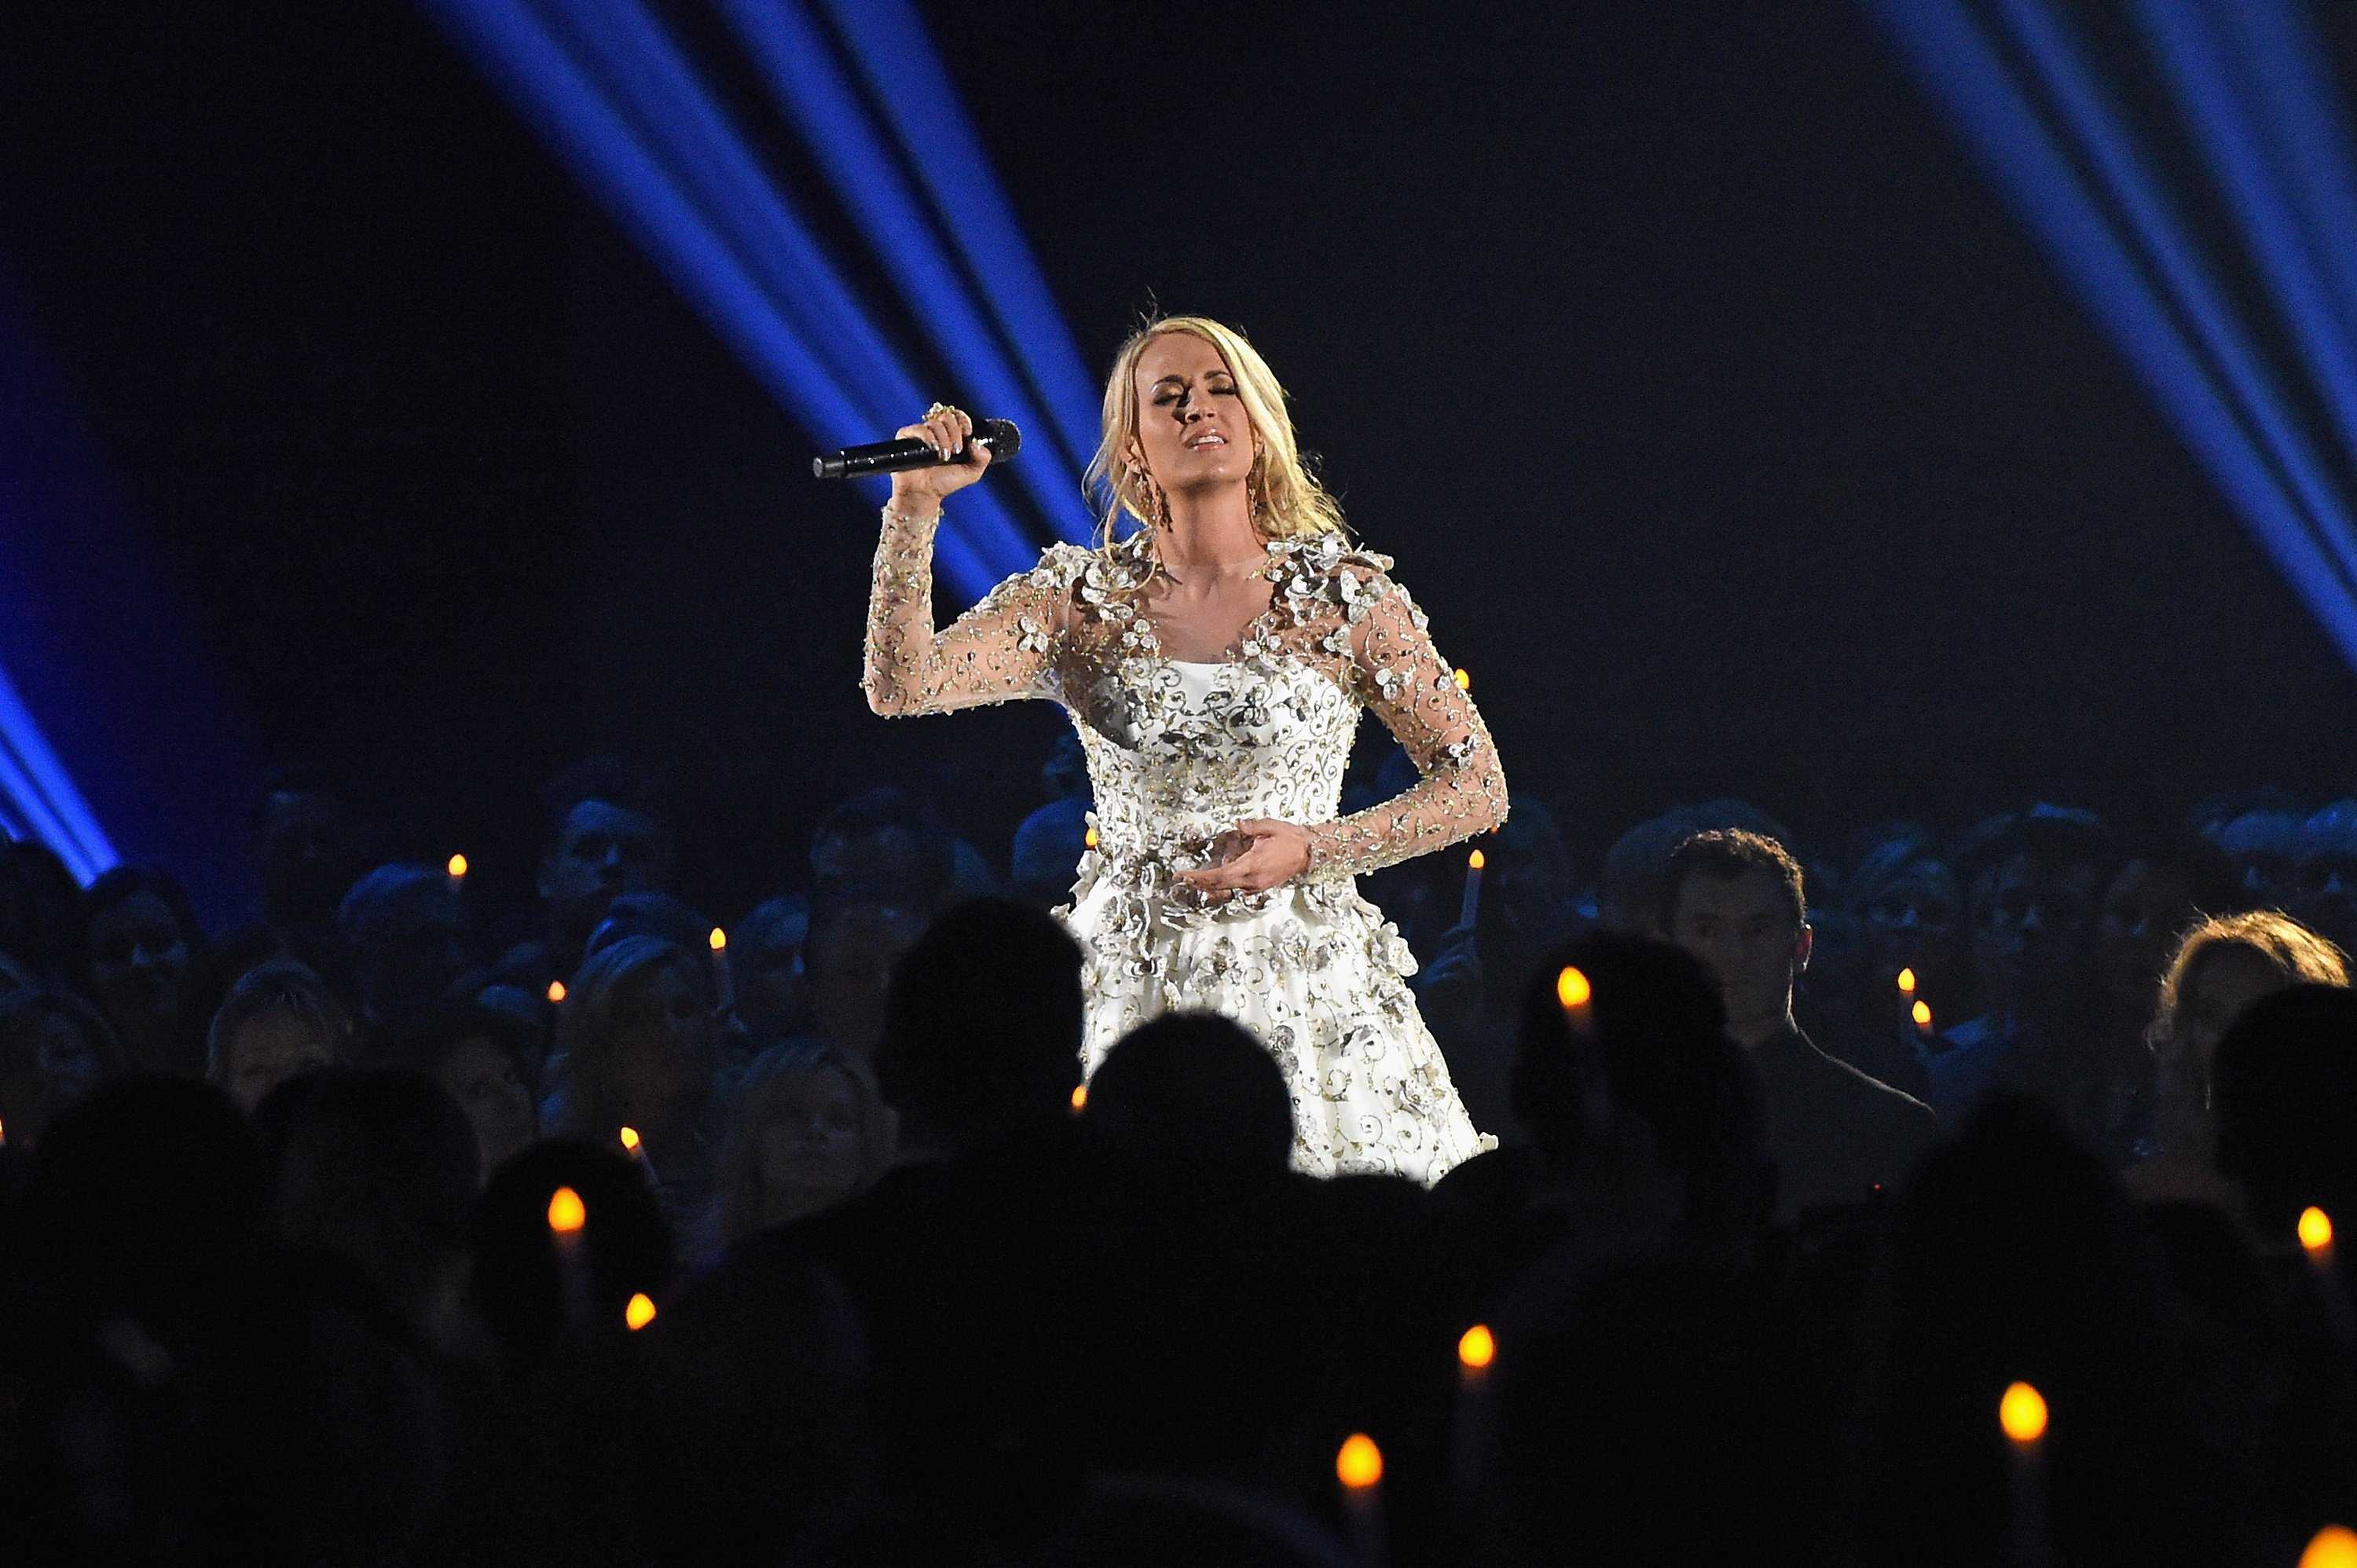 Host Carrie Underwood performs onstage at the 51st annual CMA Awards at the Bridgestone Arena on November 8, 2017 in Nashville, Tennessee